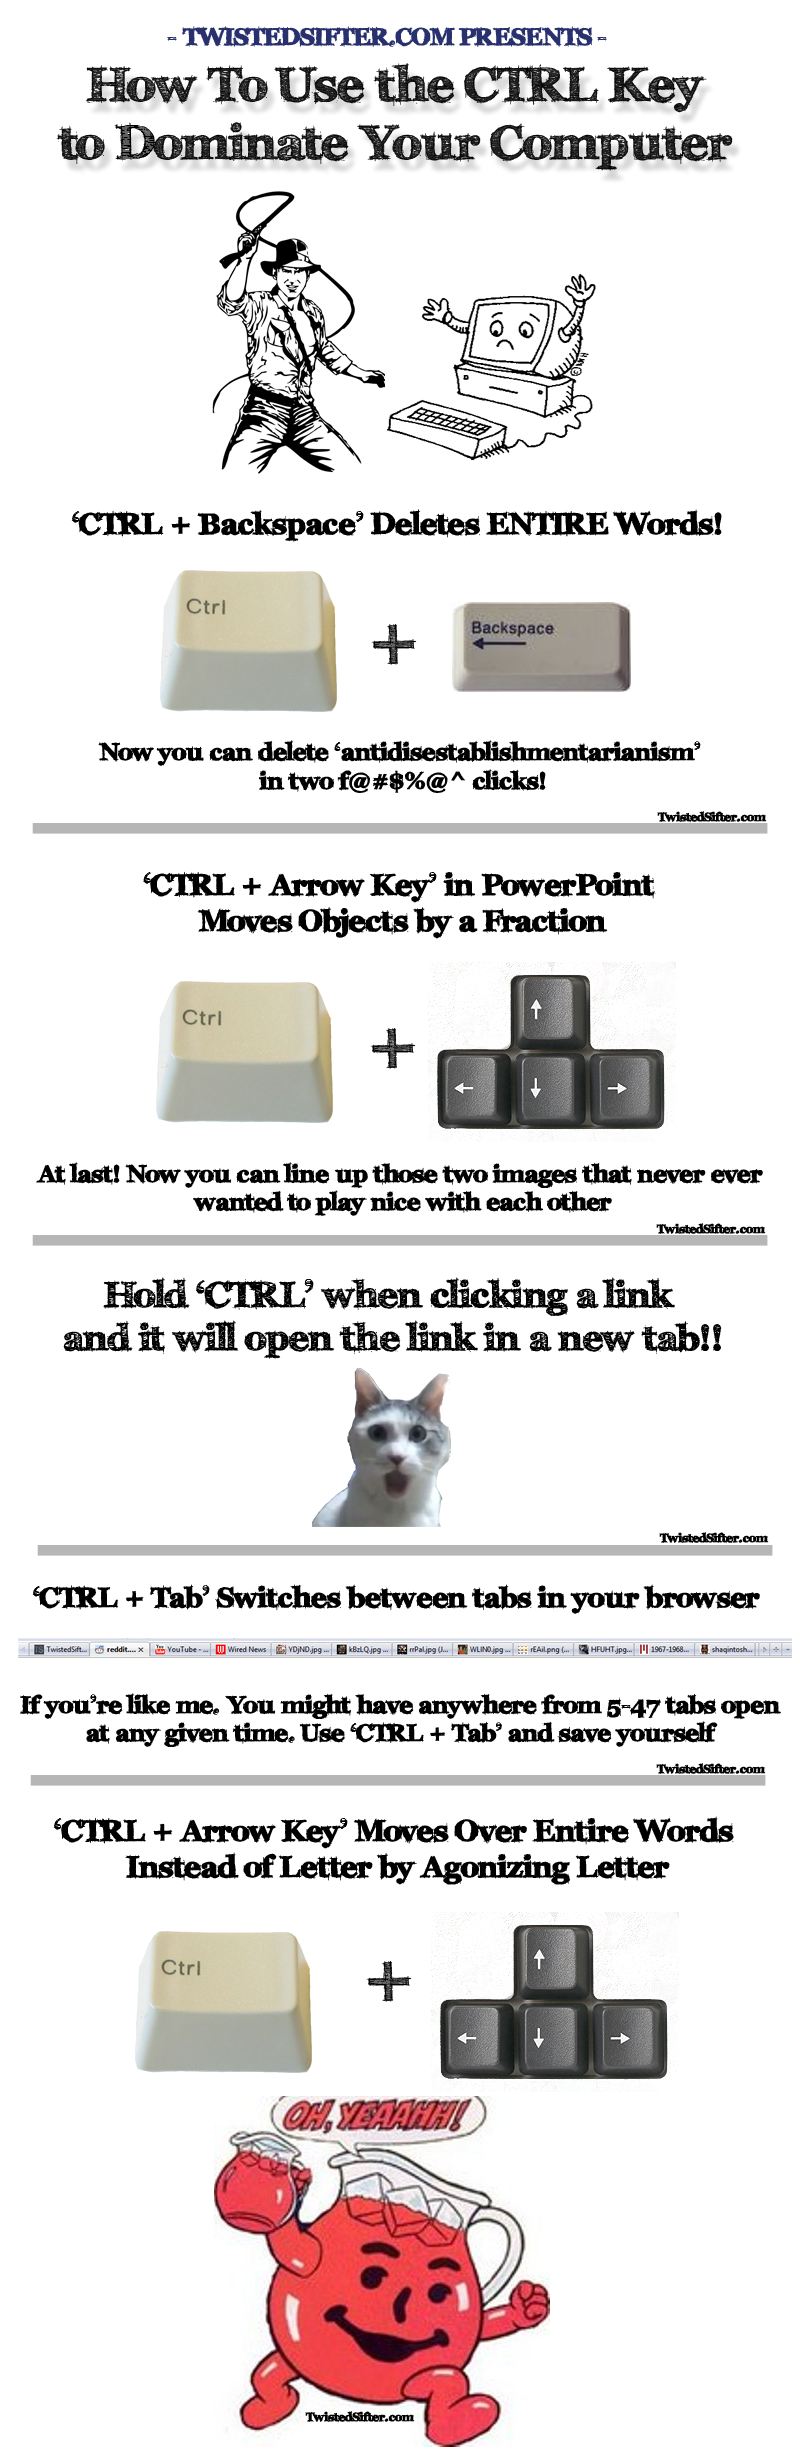 ctrl-key-shortcuts-infographic